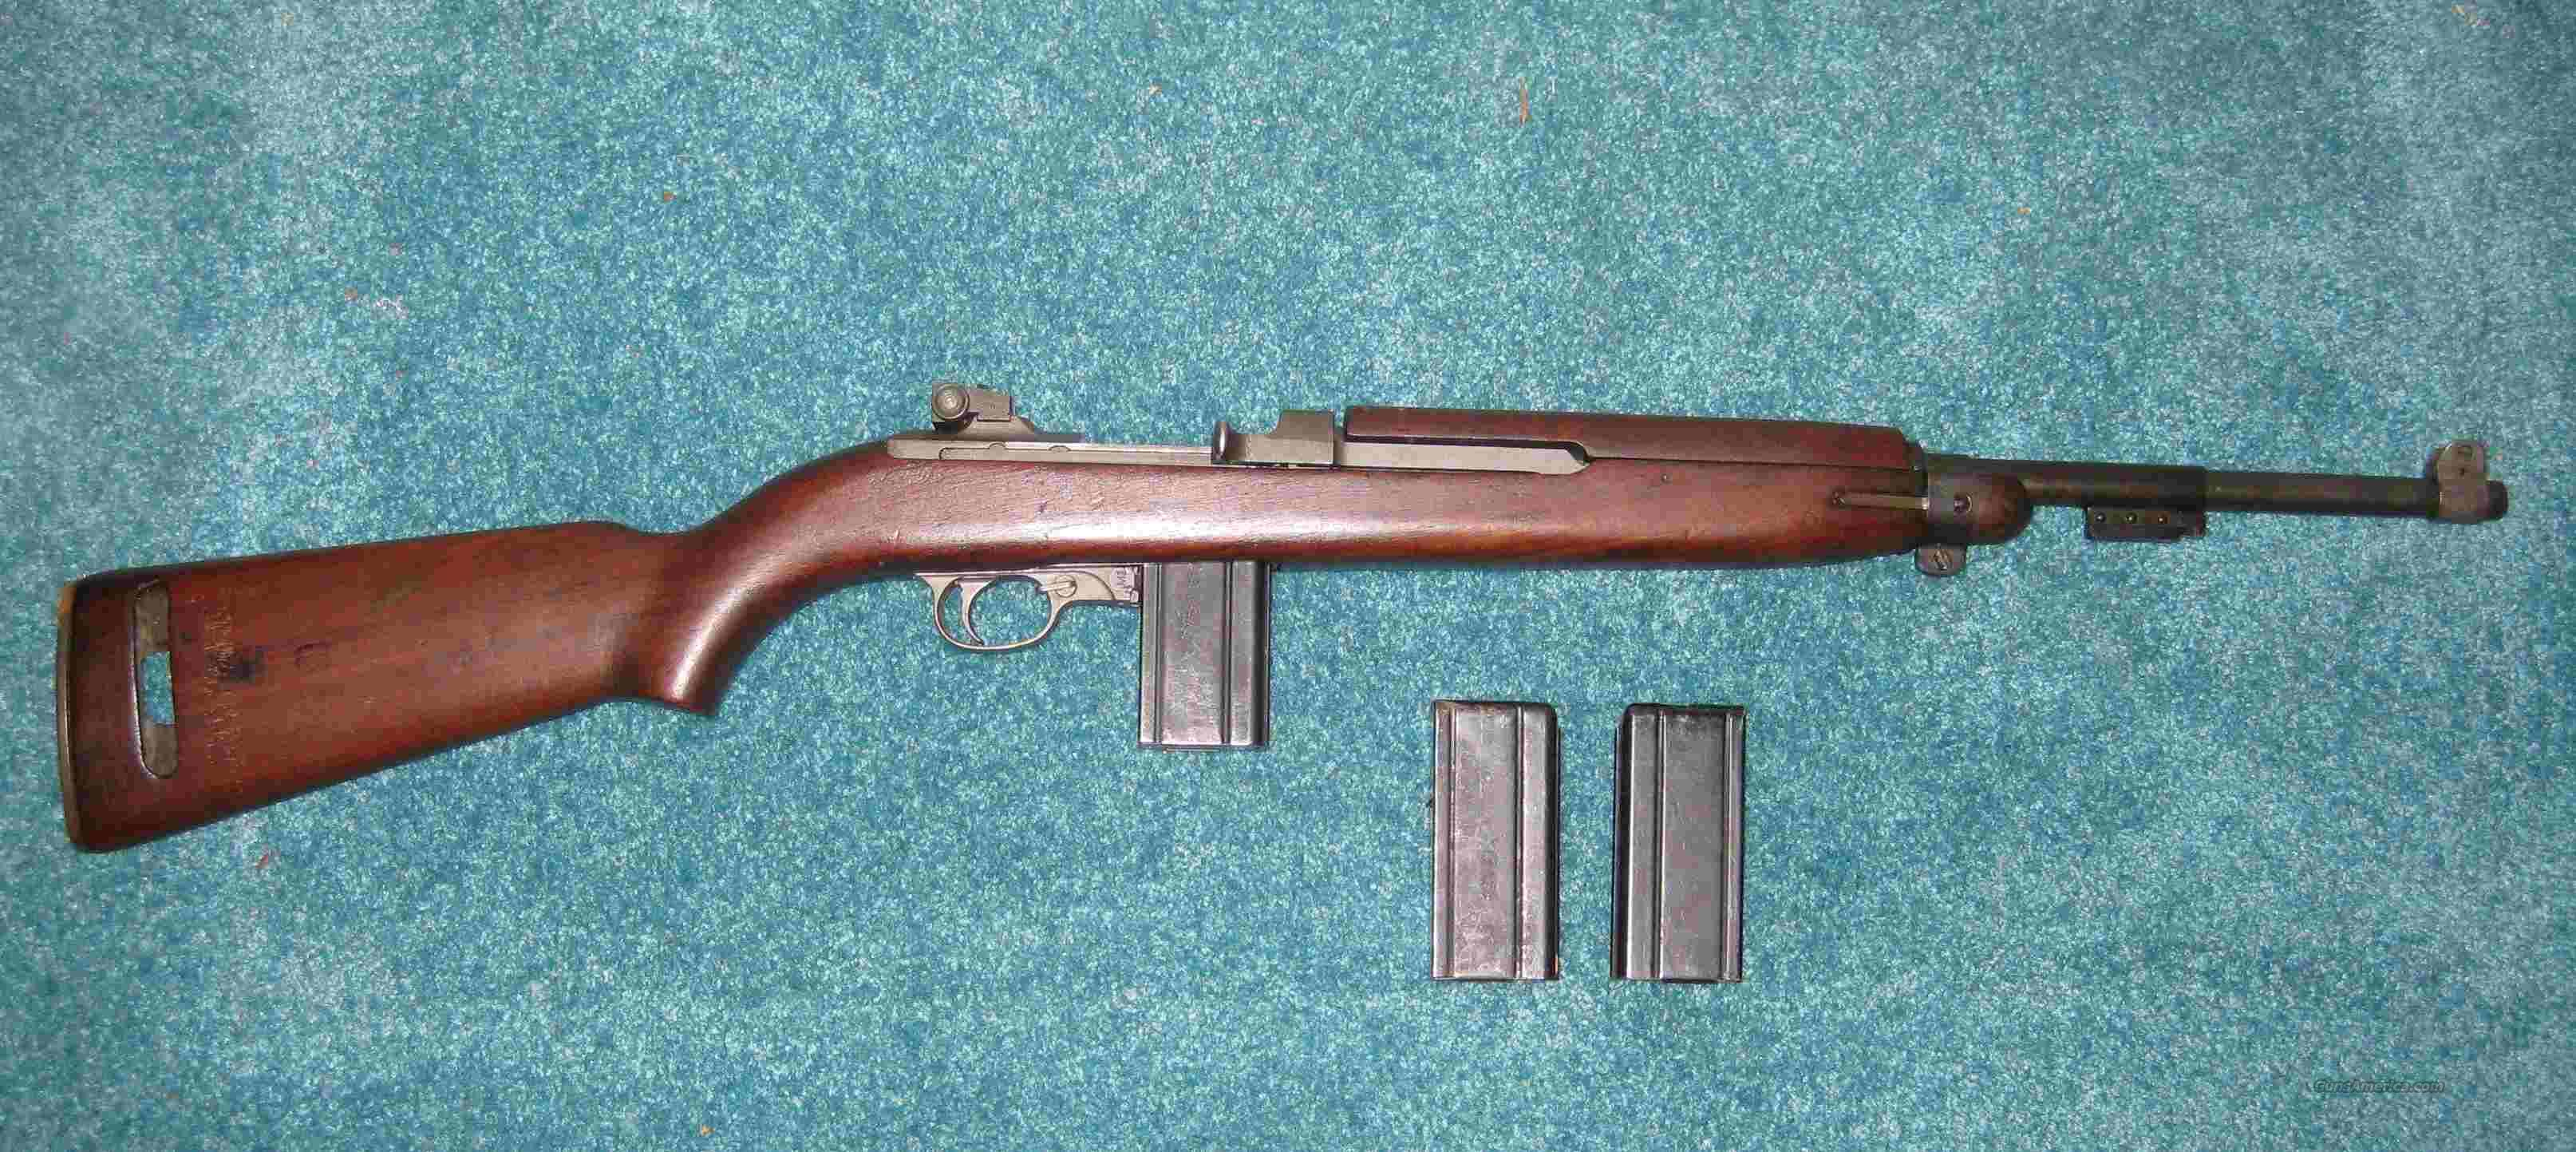 M1 CARBINE Military Issue  Guns > Rifles > Military Misc. Rifles US > M1 Carbine